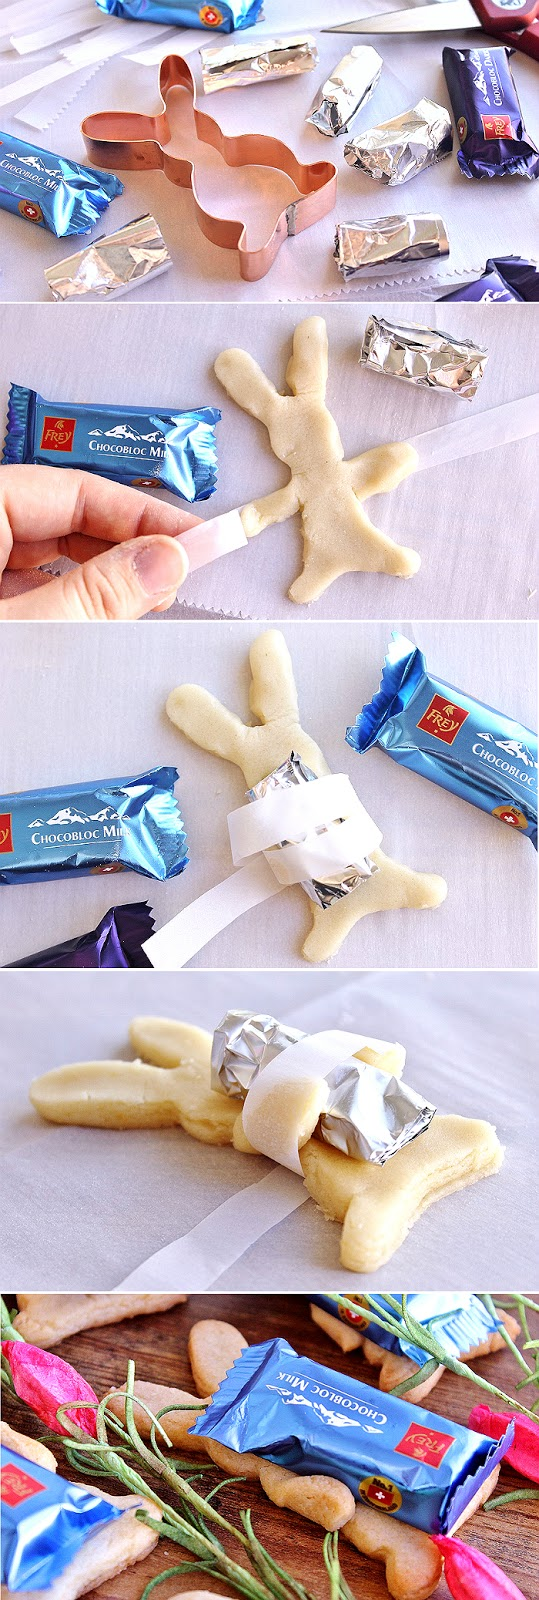 Wow your guests with this simple technique to make sugar cookie favors that hold a special treat! #Introducing ChocolatFreyNA the #1 selling chocolate brand in Switzerland, authentic Swiss premium chocolates now sold state-side. AD